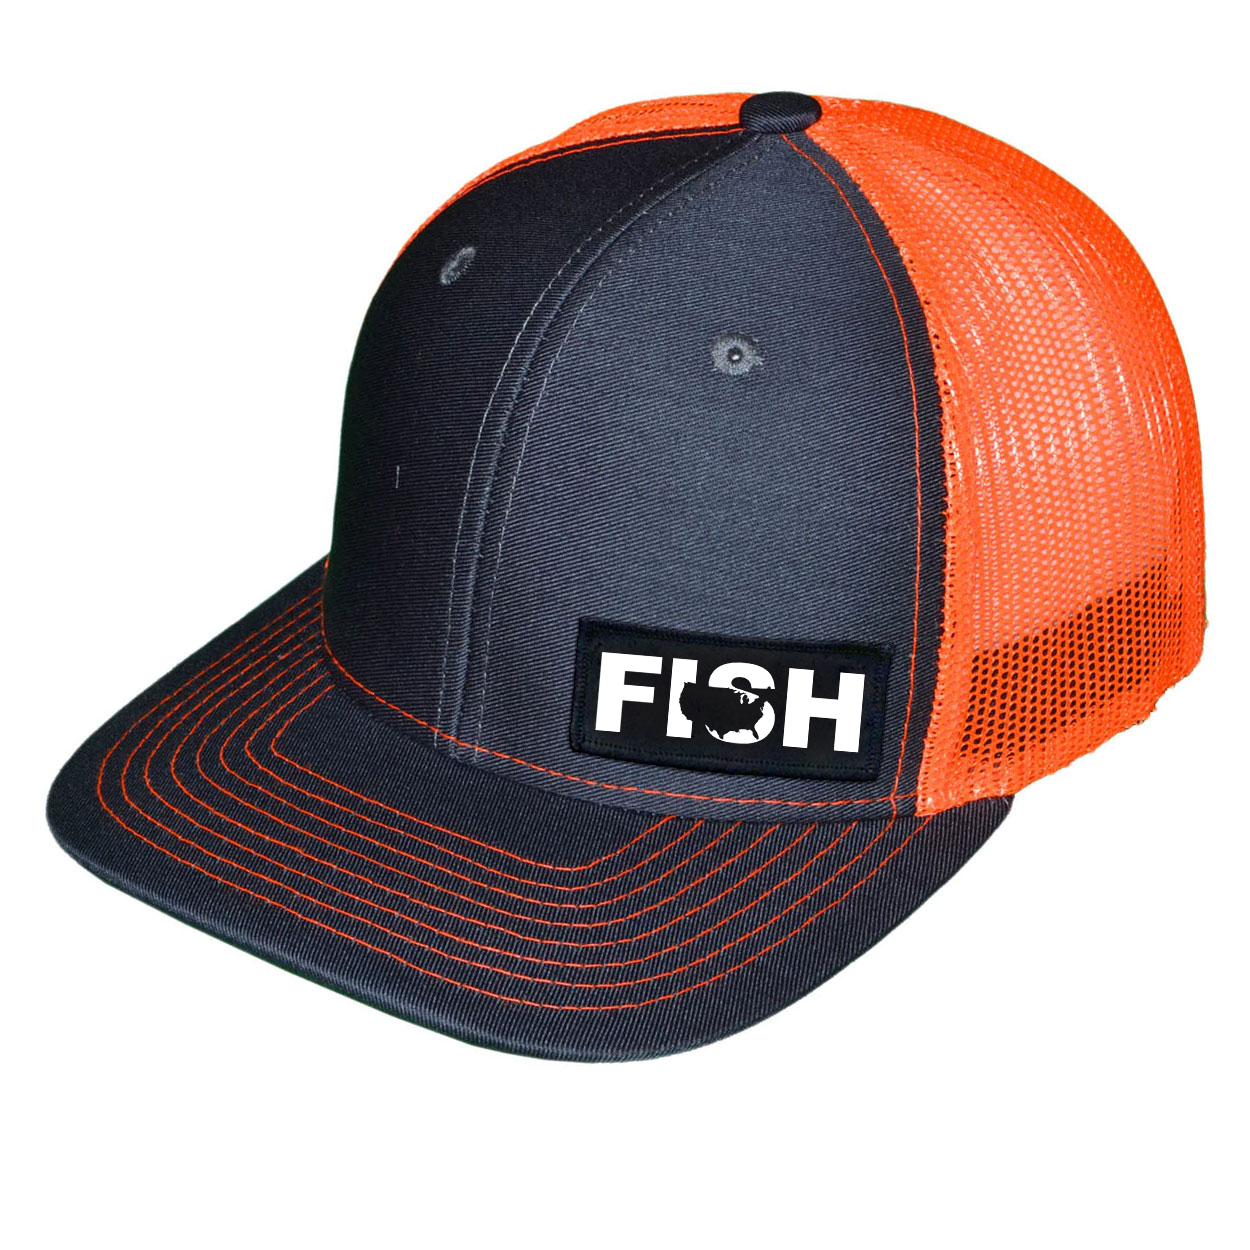 Fish United States Night Out Woven Patch Snapback Trucker Hat Dark Gray/Orange (White Logo)